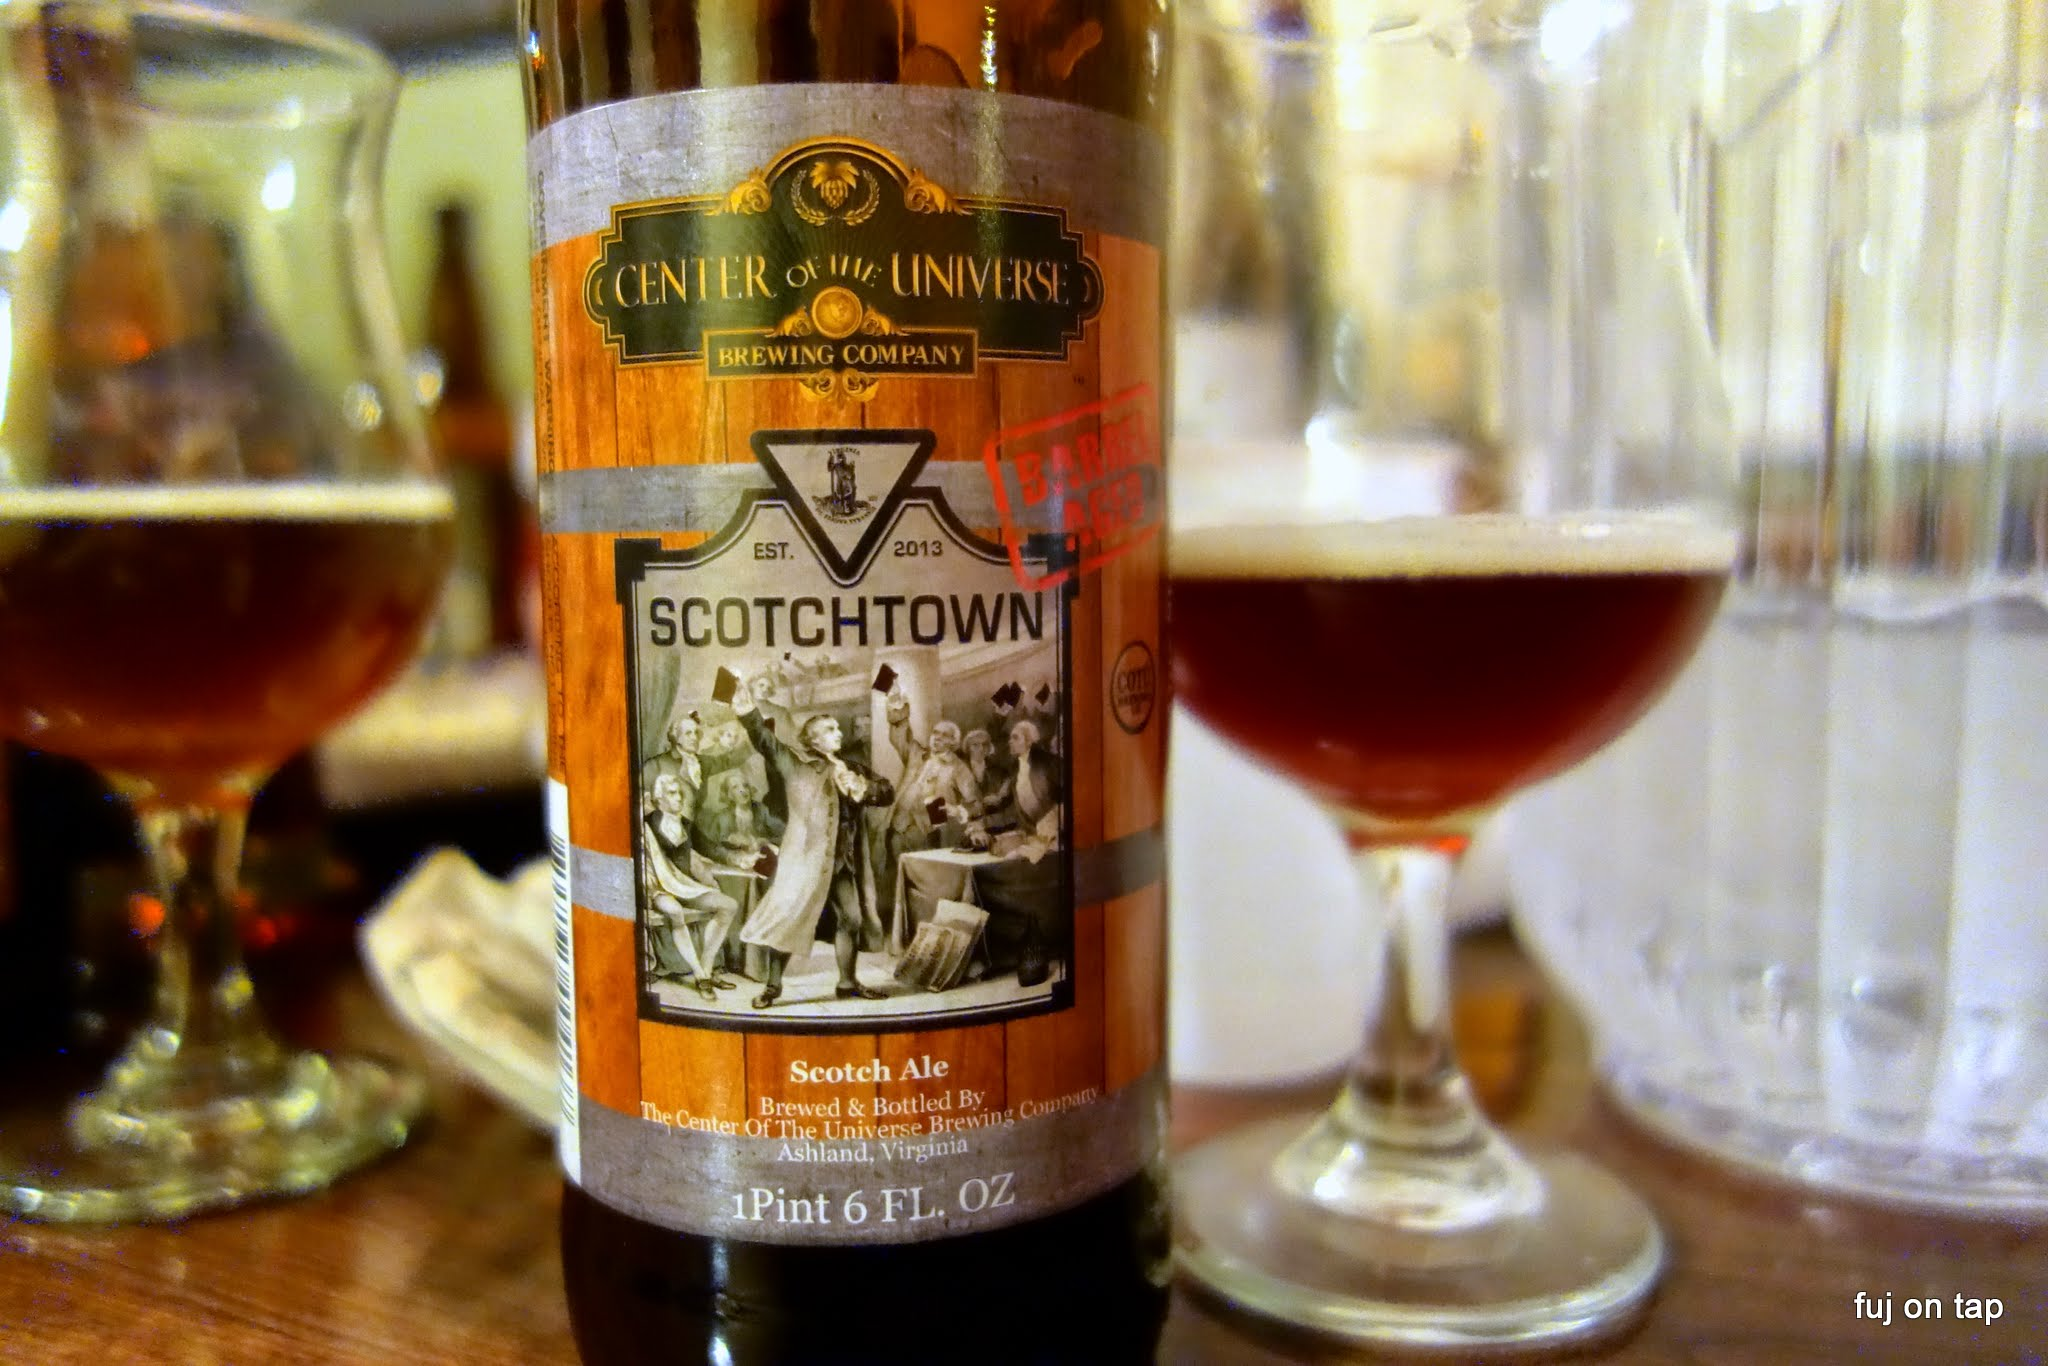 Center of the Universe Barrel Aged Scotchtown